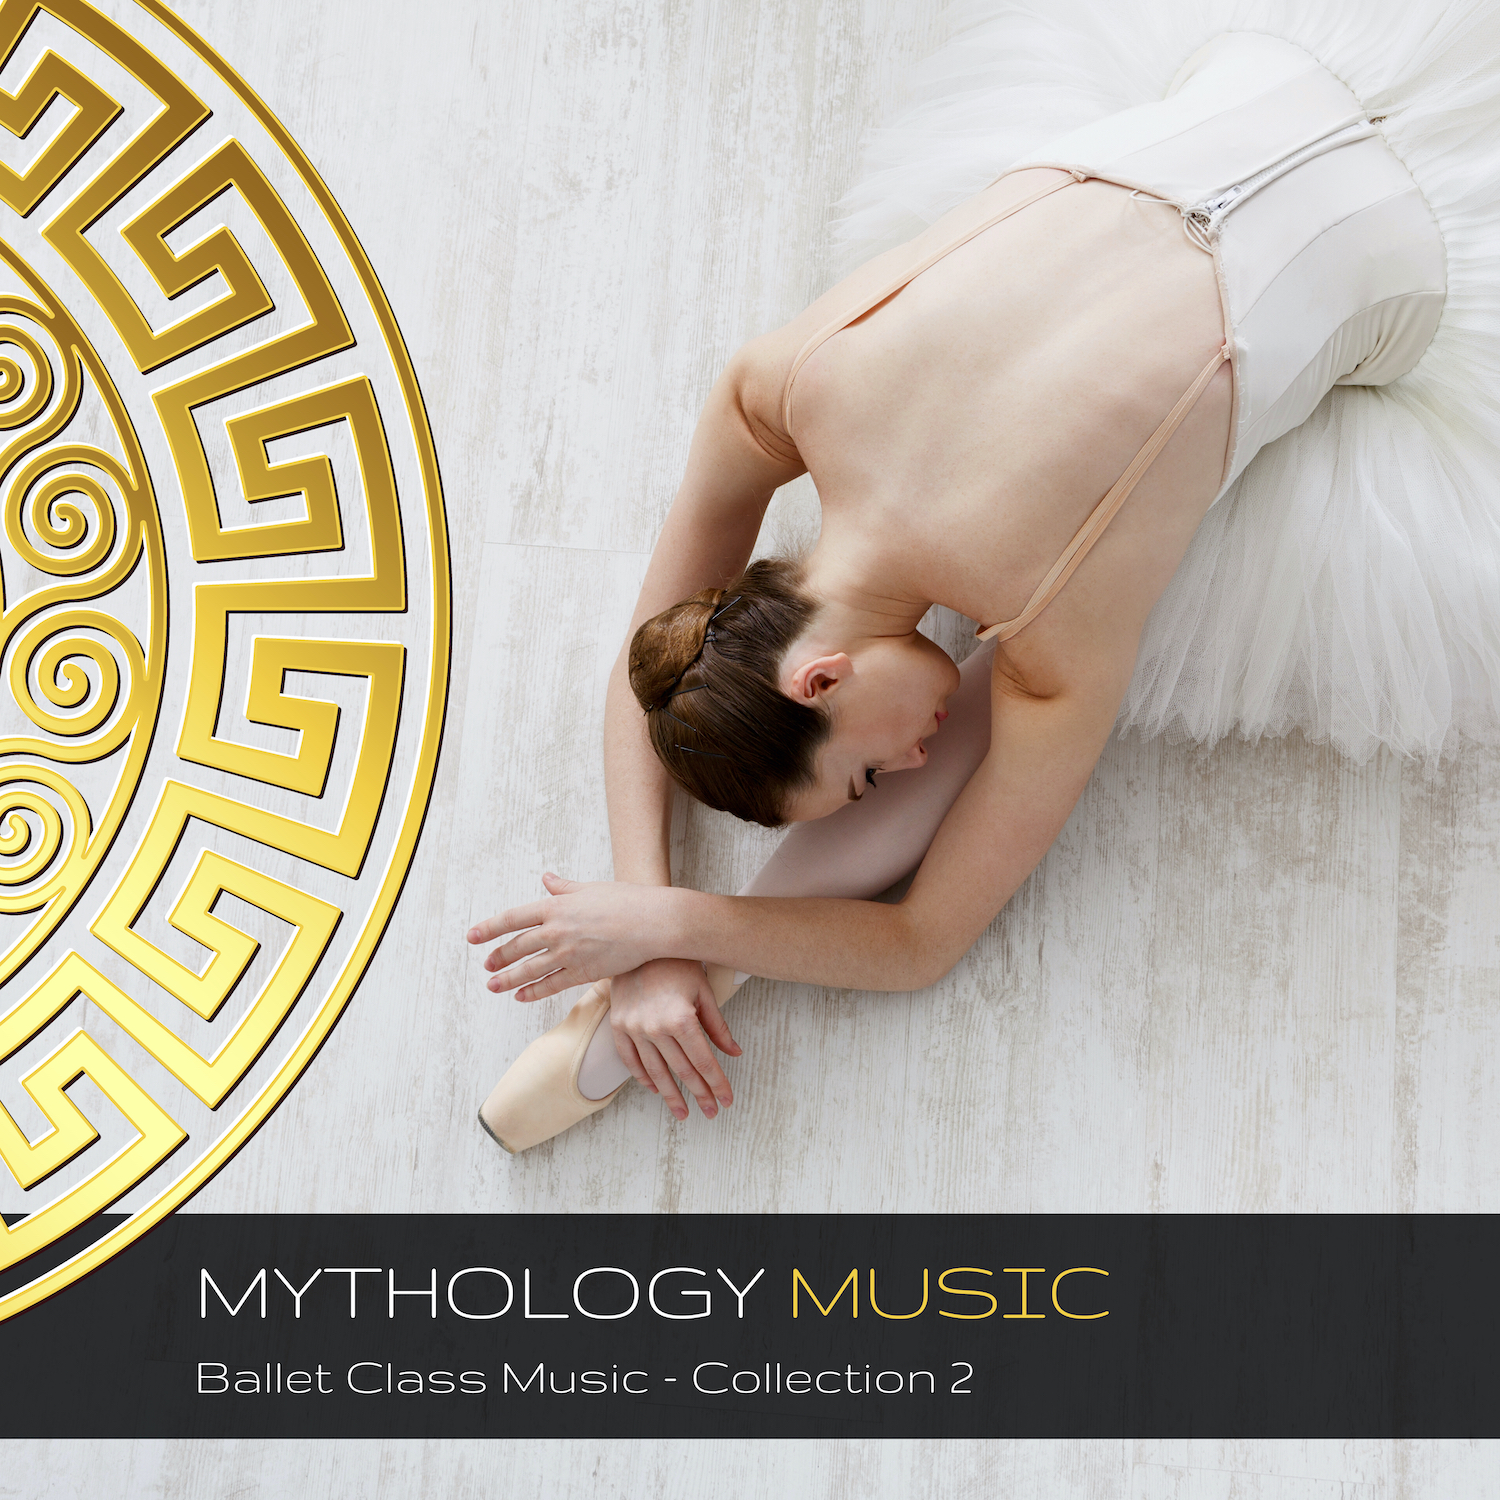 Mythology Music - Ballet Music Collection 2